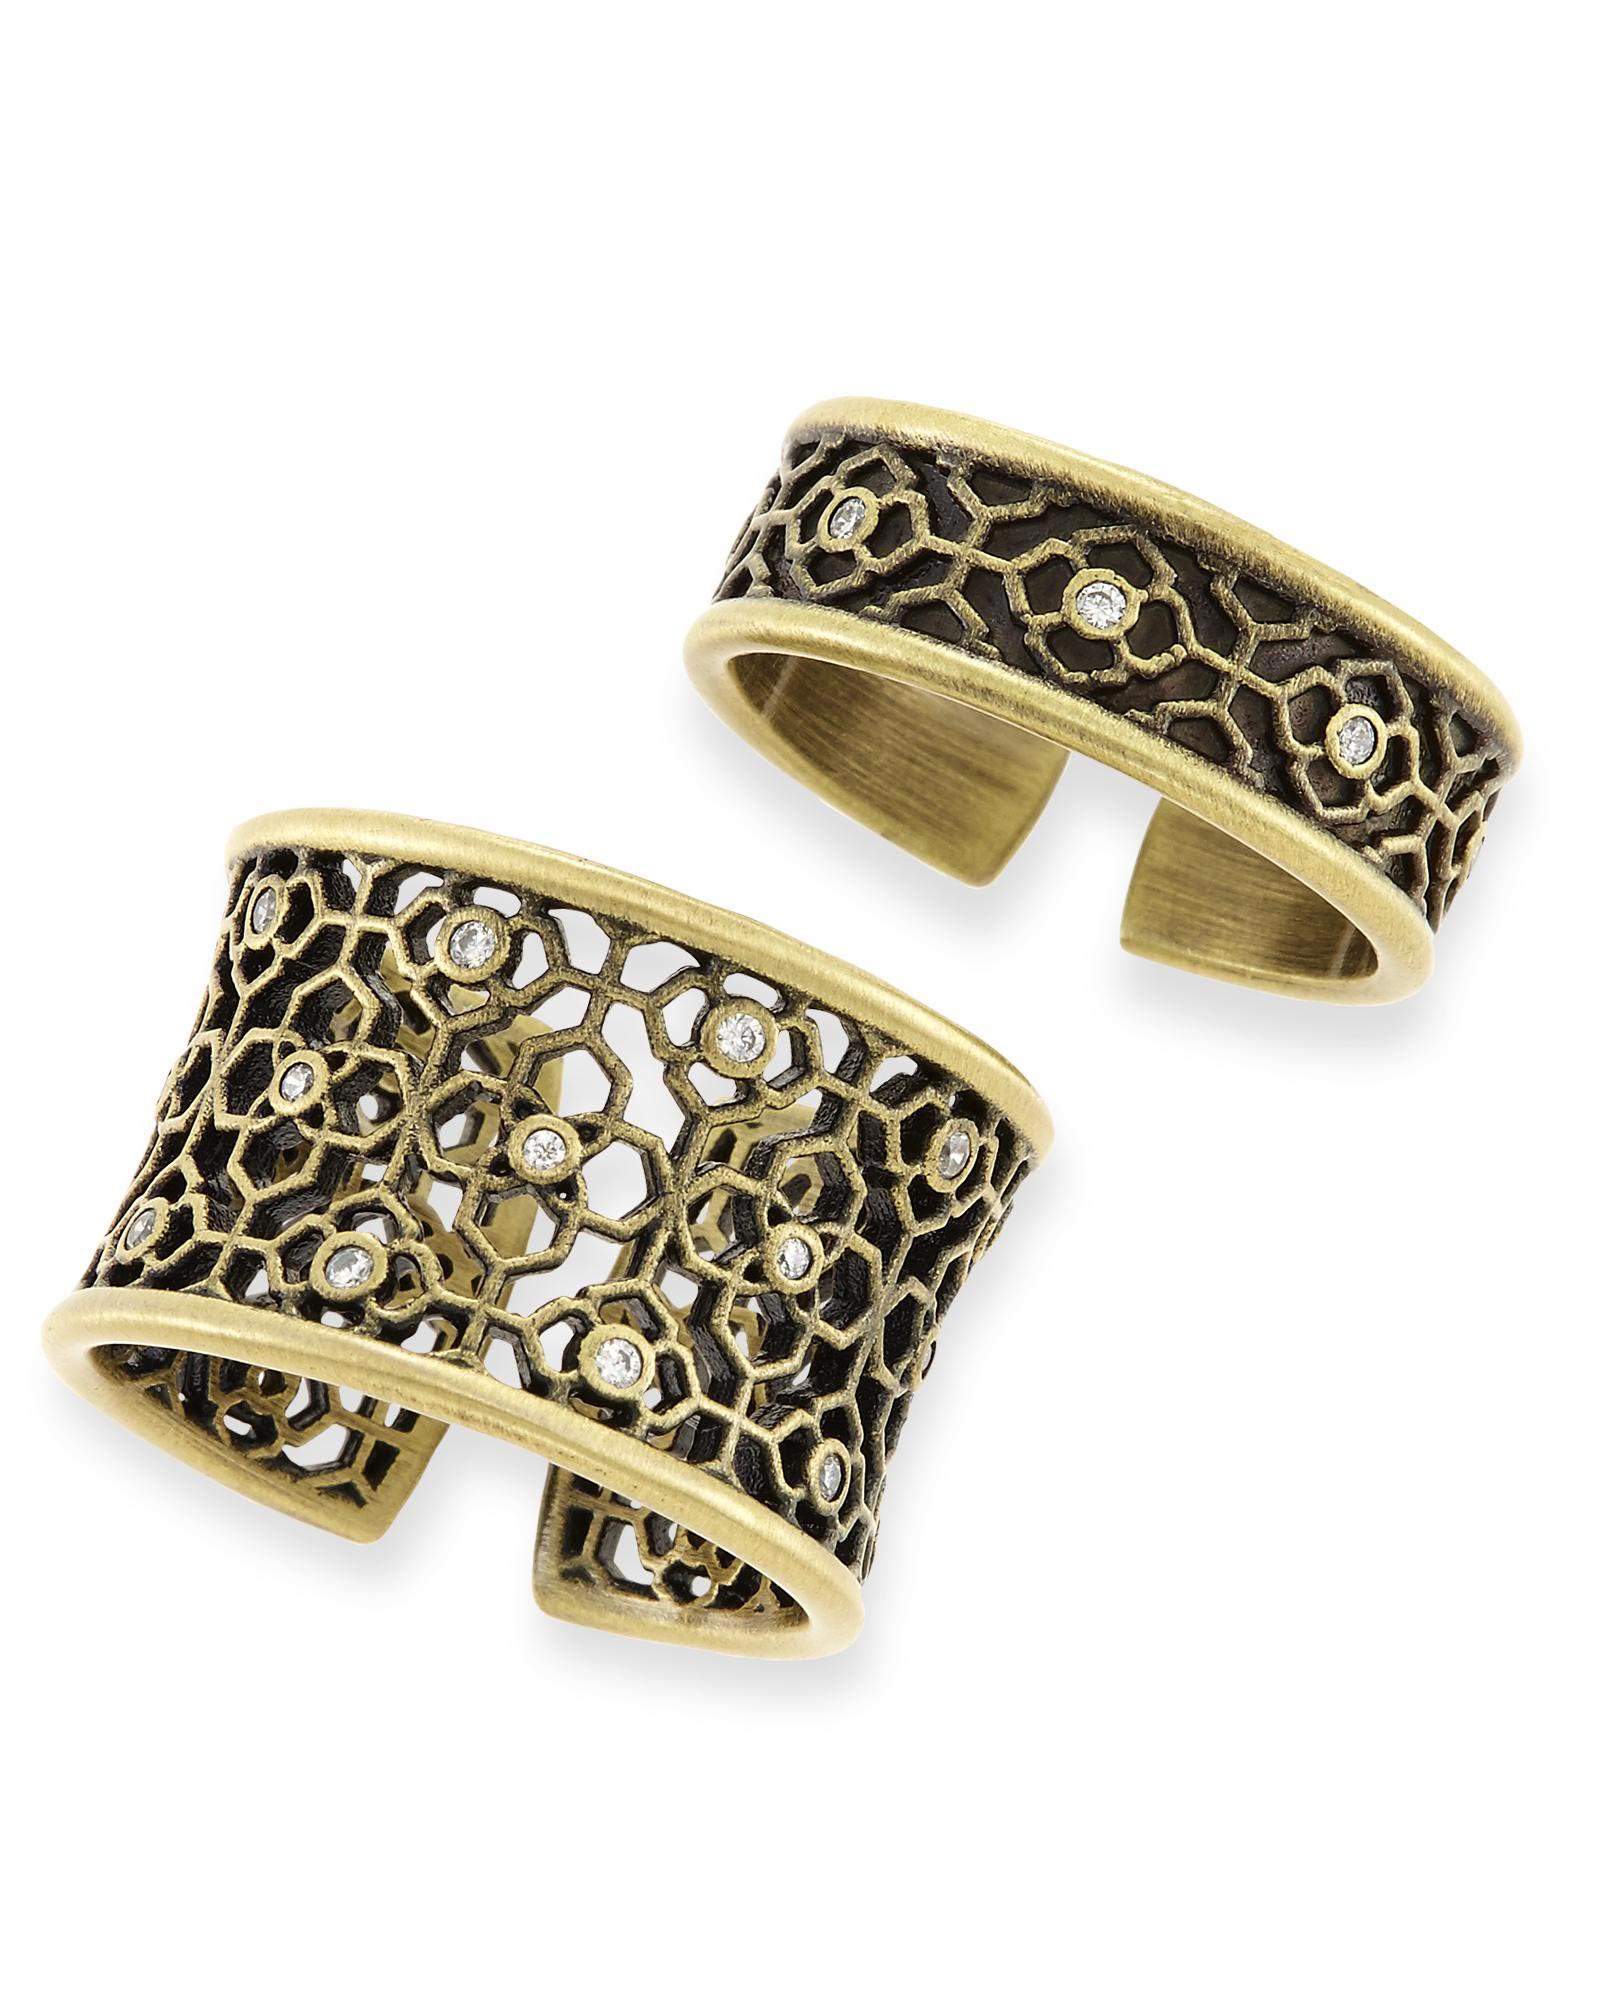 Kensey Ring Set in Antique Brass